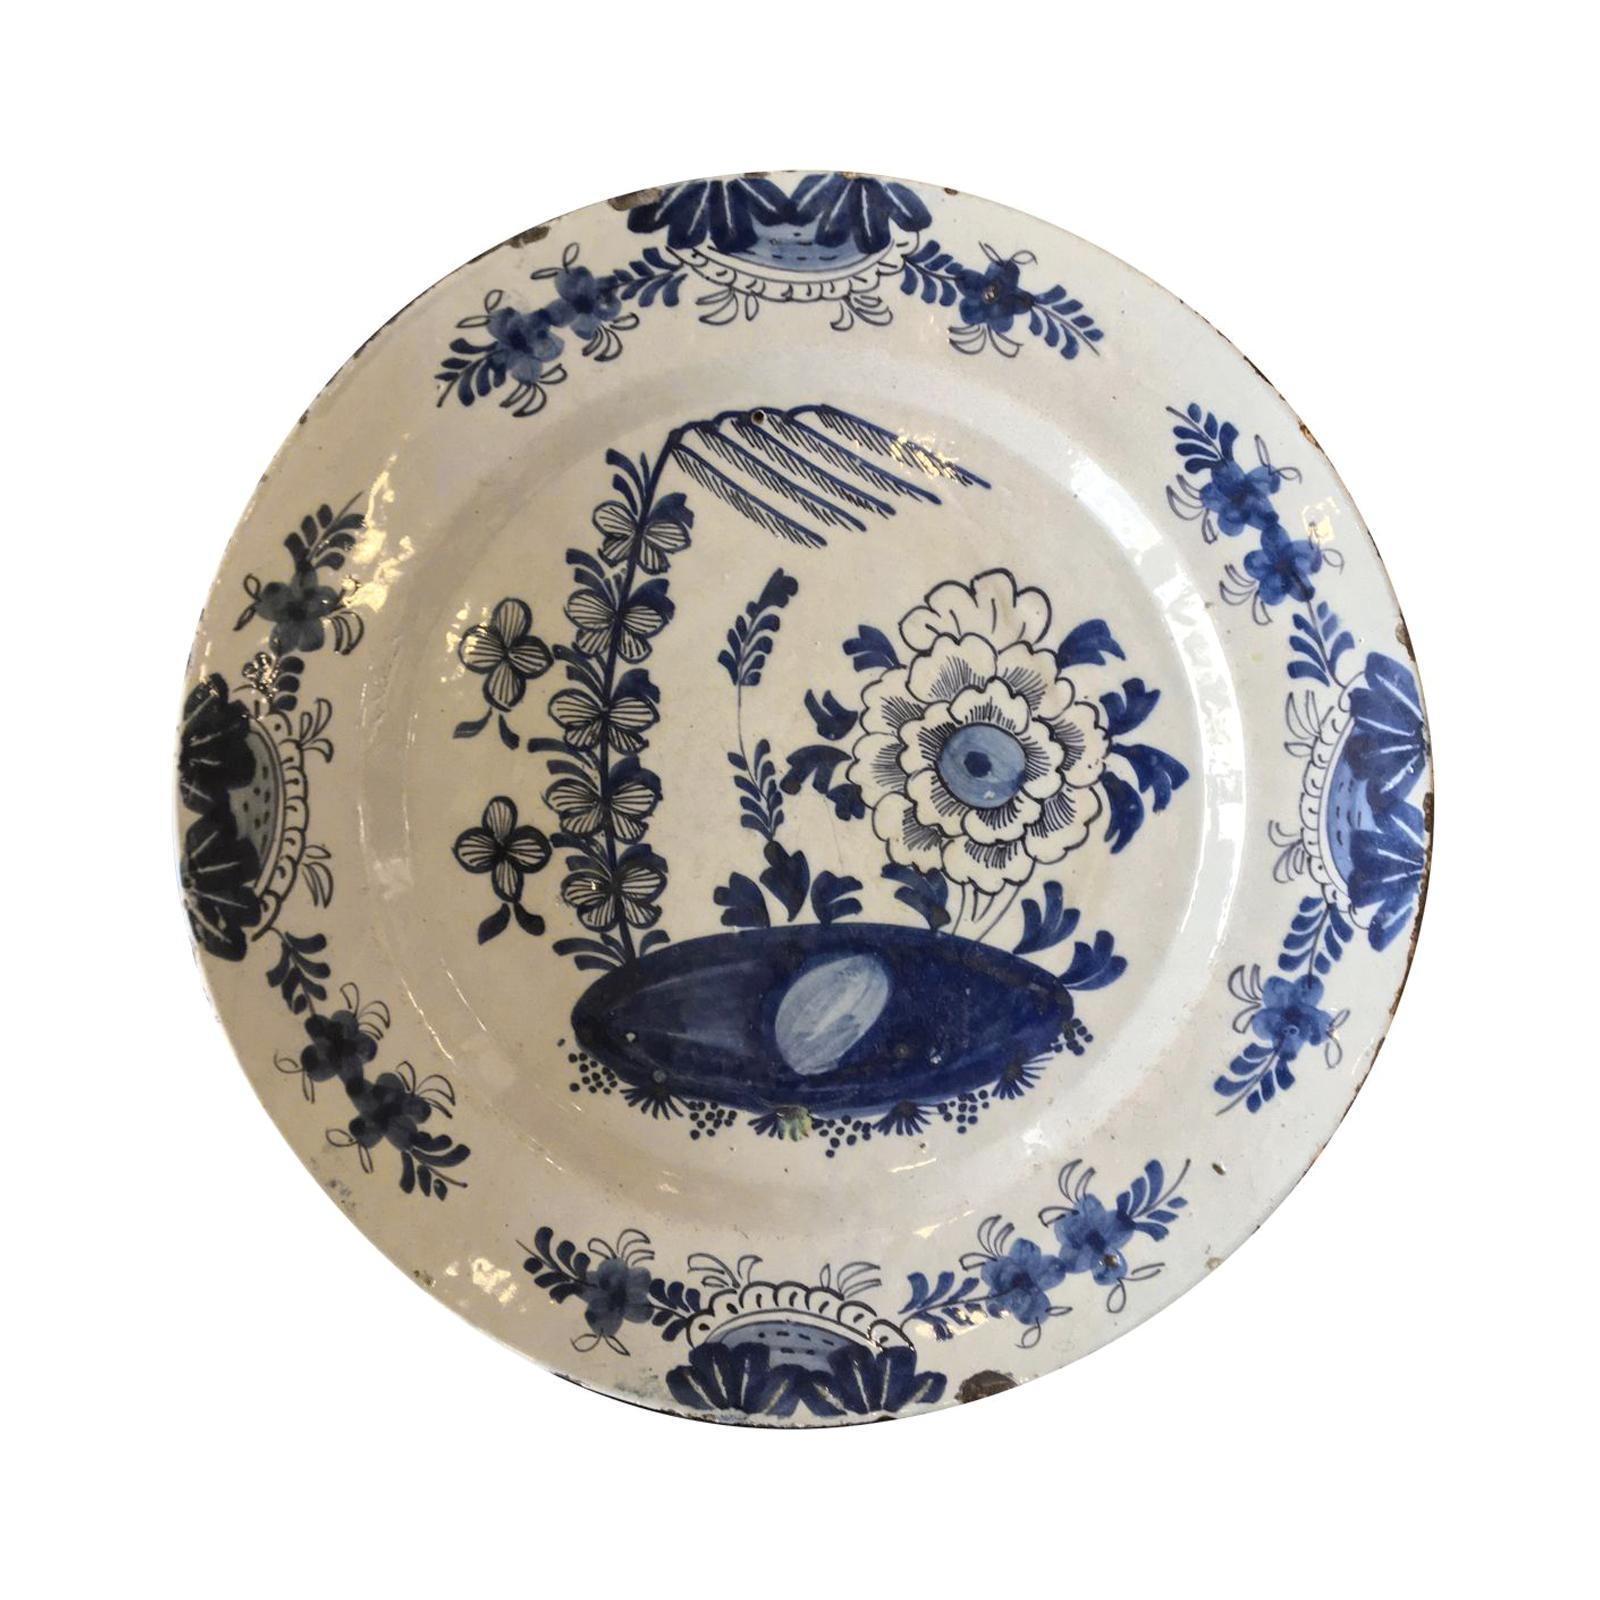 Blue and White 18th Century Delft Charger